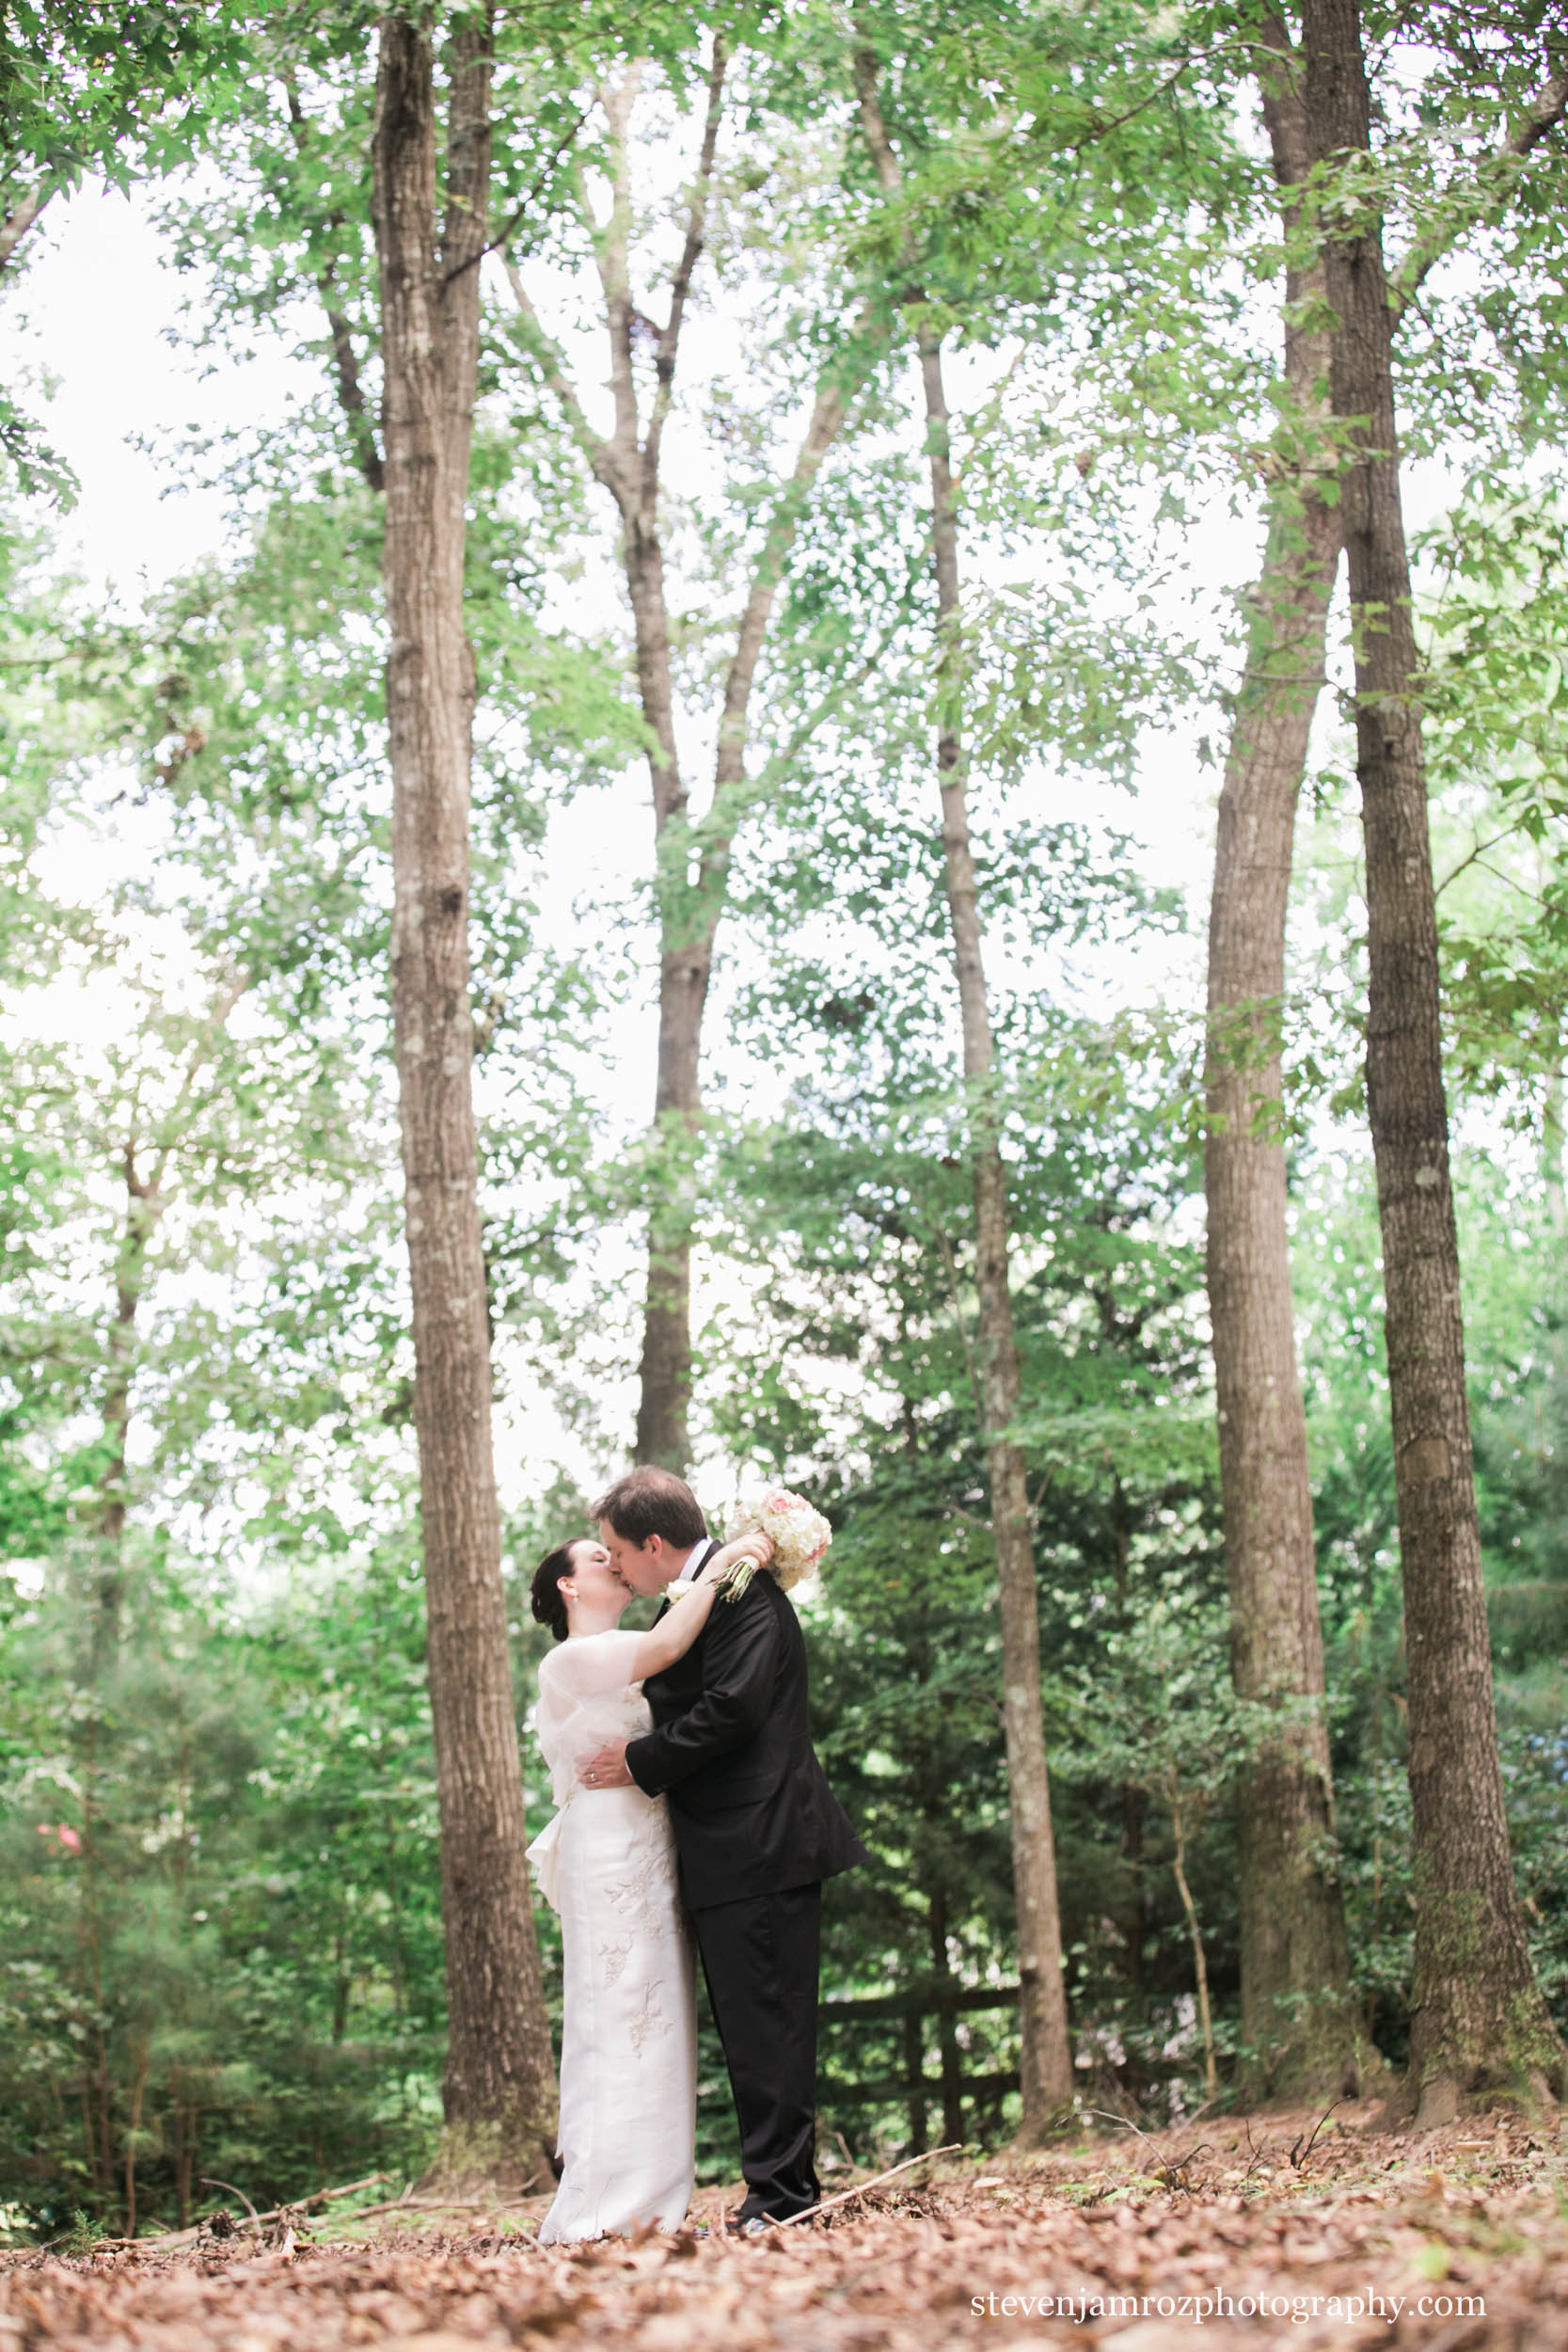 embrace-bride-groom-wake-forest-nc-steven-jamroz-photography-0083.jpg